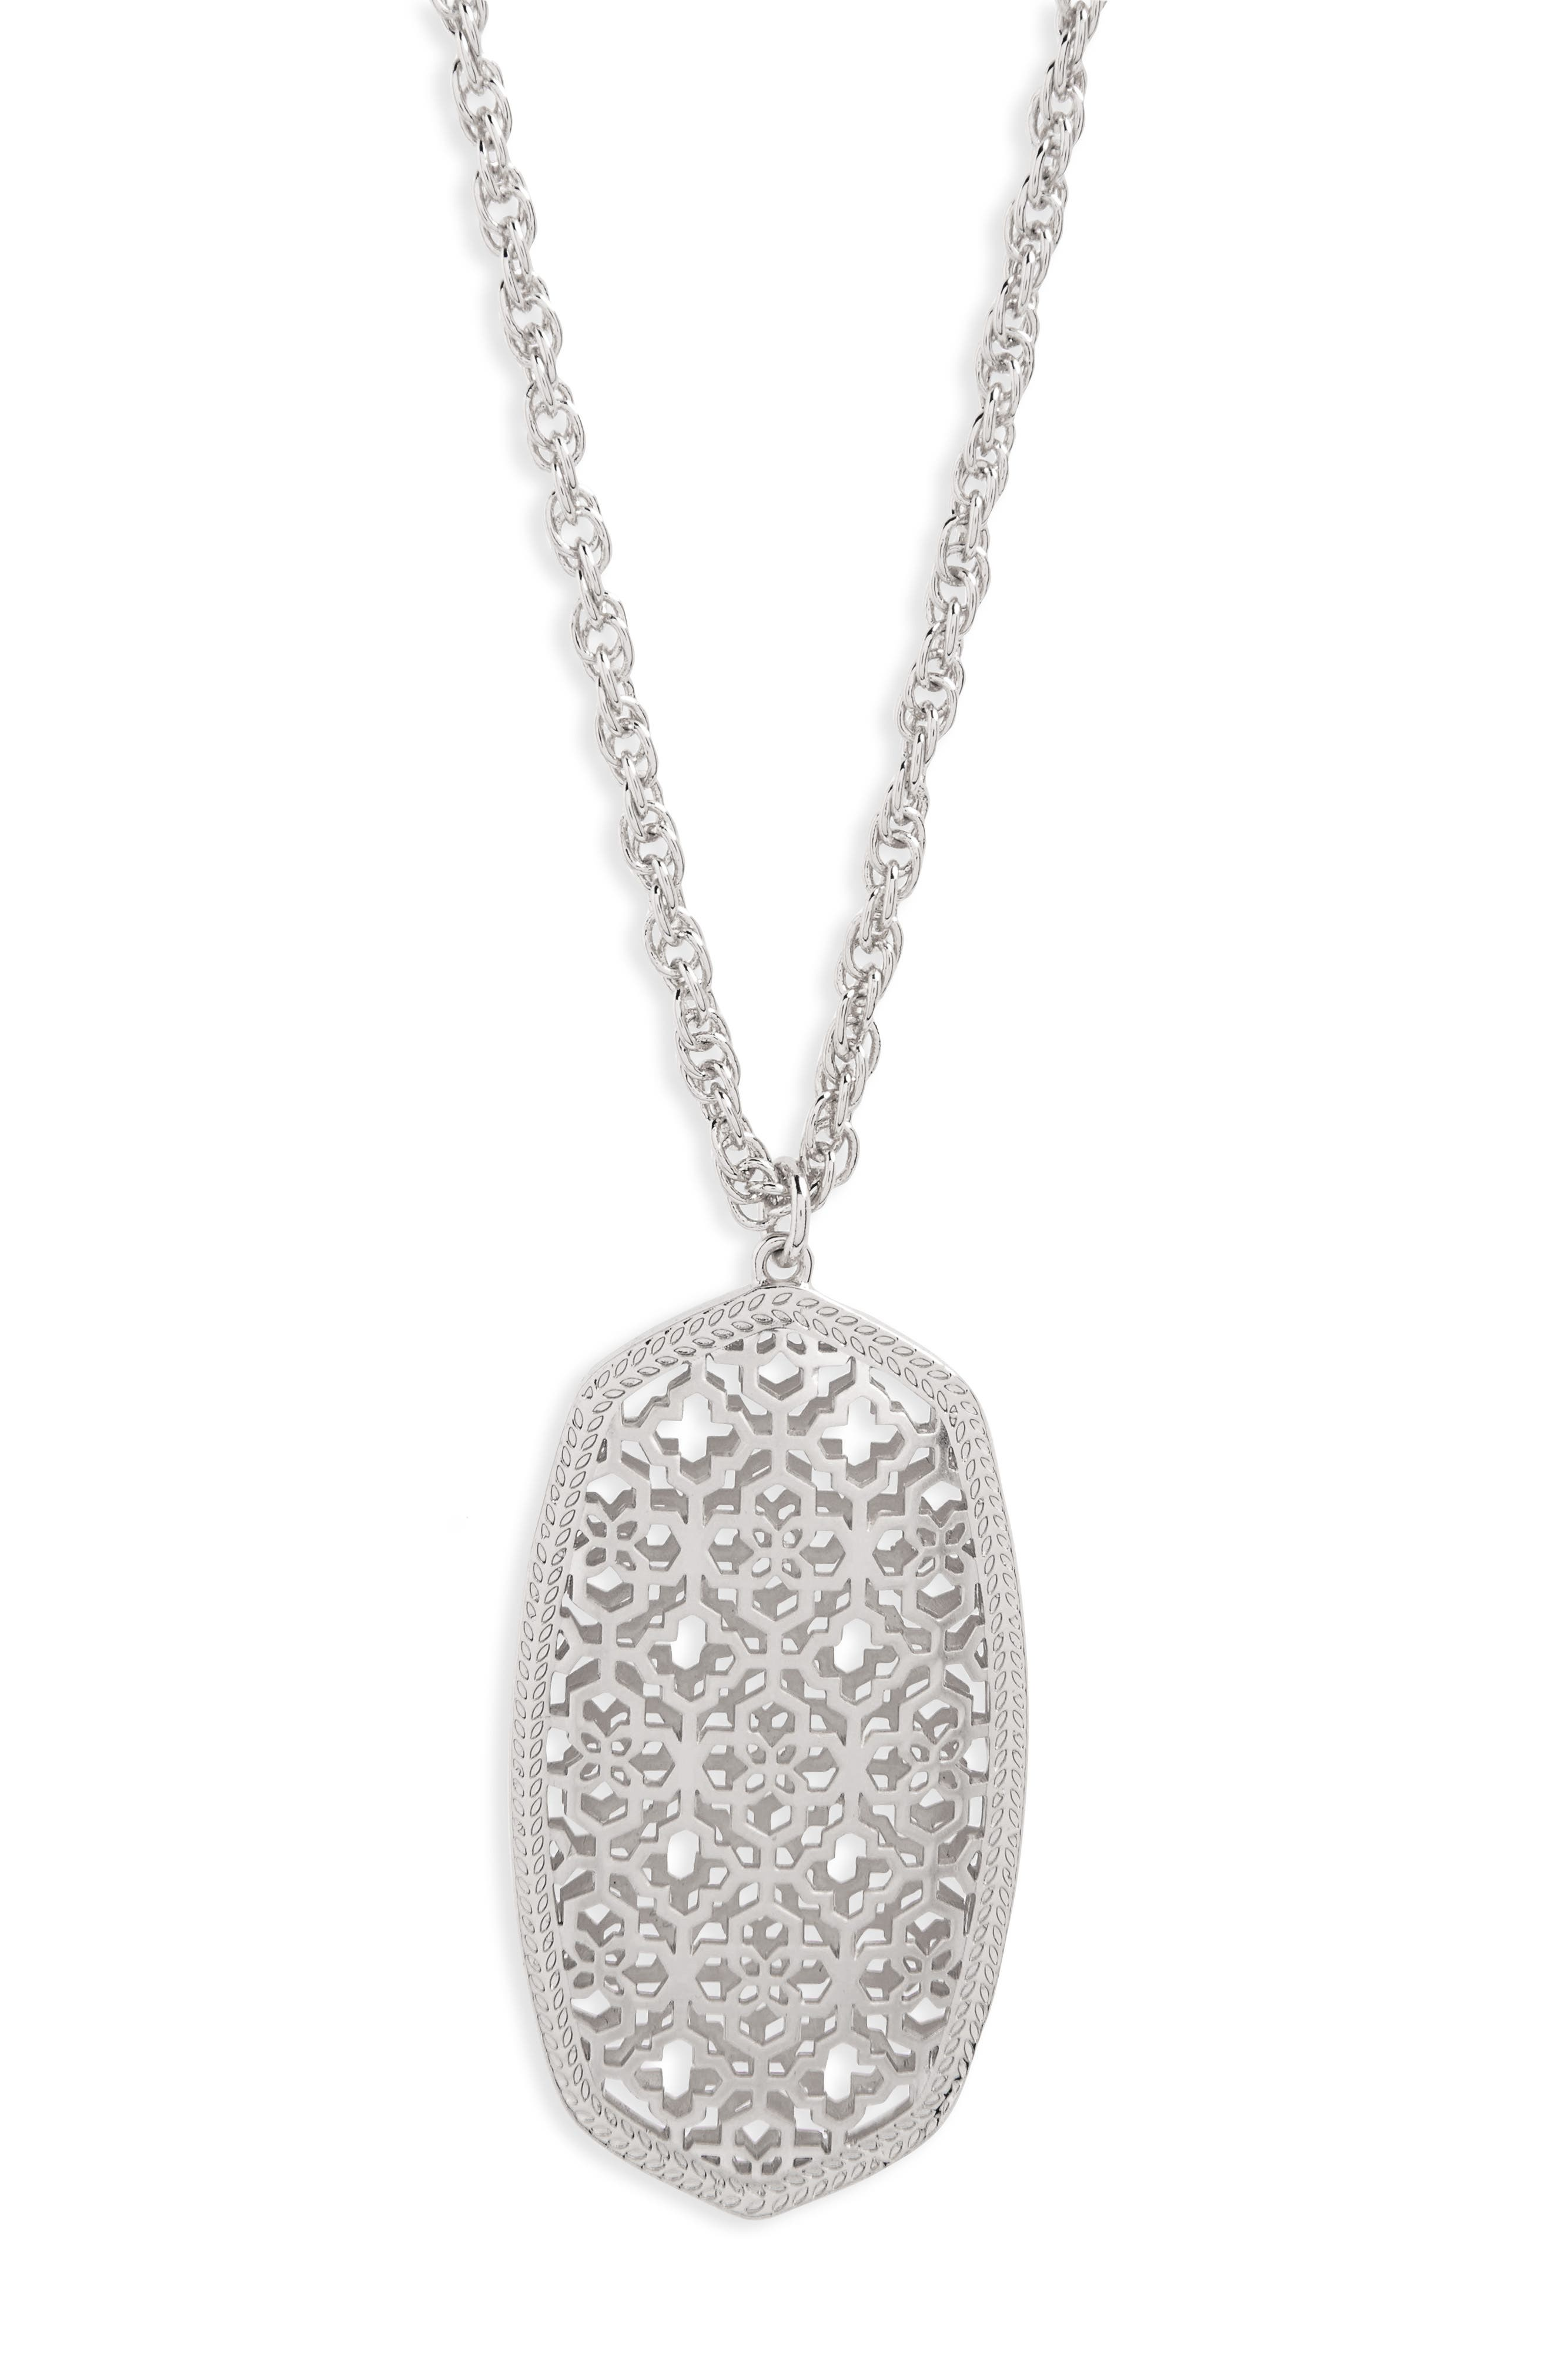 KENDRA SCOTT,                             Rae Long Filigree Pendant Necklace,                             Alternate thumbnail 2, color,                             SILVER FILIGREE